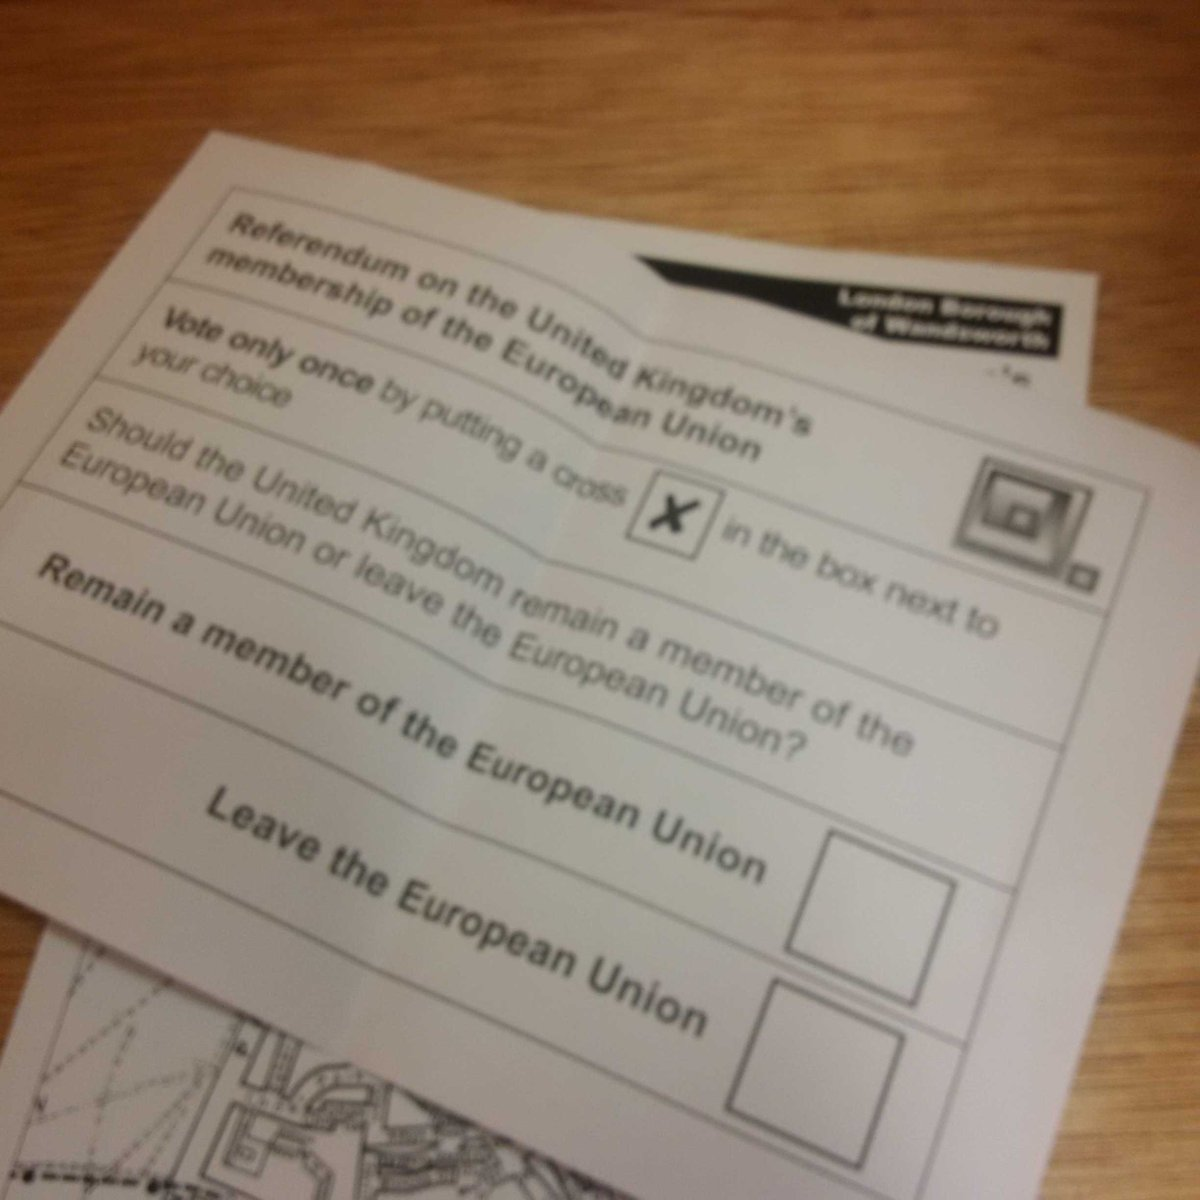 The all important #EURef ballot paper - #Remain is the only option to keep Britain forward-looking and open. https://t.co/xns59dYDik